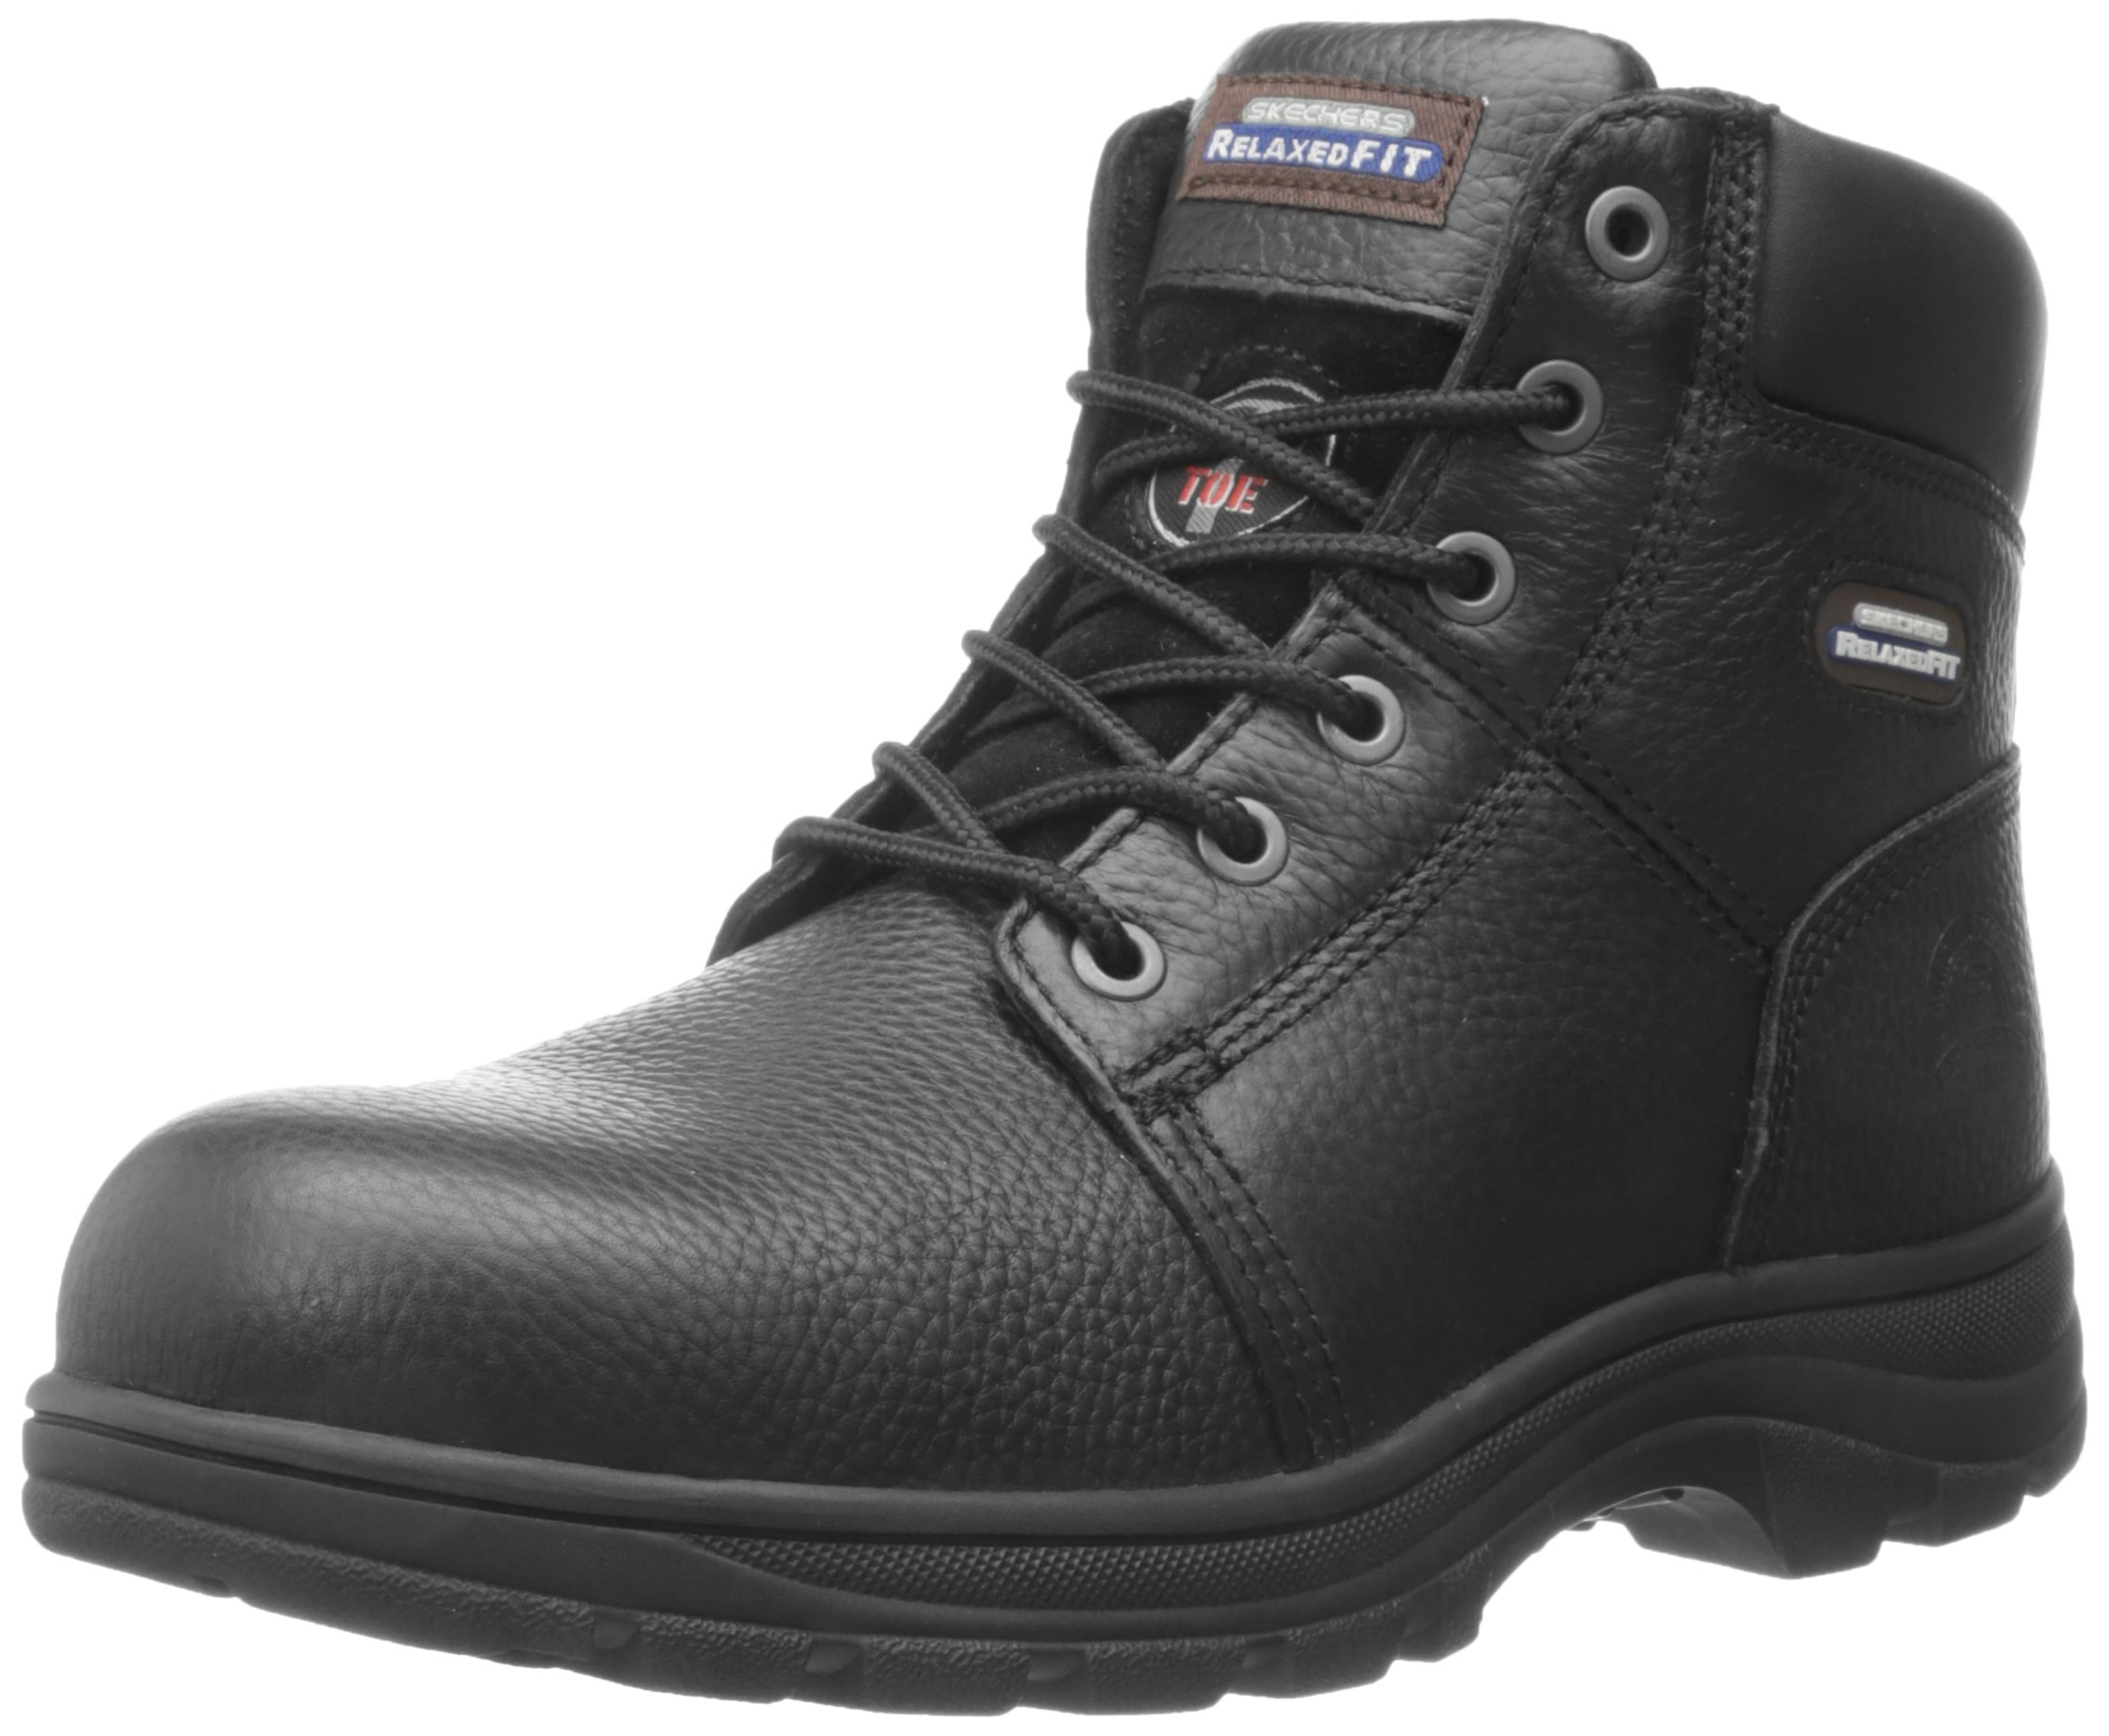 Skechers for Work Men's Workshire Relaxed Fit Work Steel Toe Boot,Black,10.5 W US by Skechers